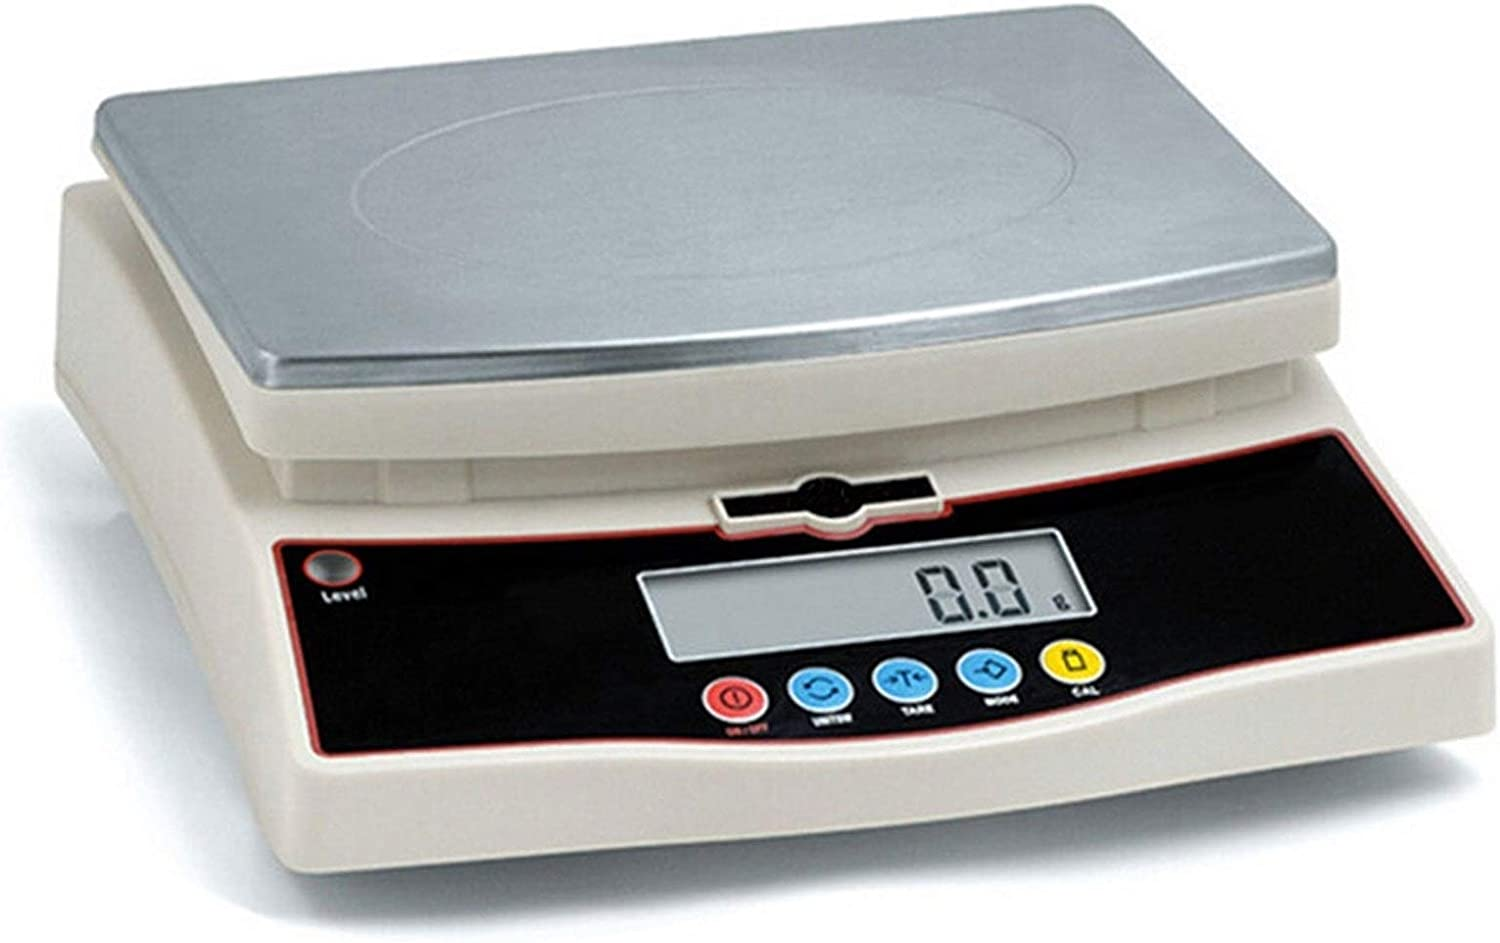 RUJIXU Kitchen Scales Precise Electronic Inventory cleanup selling sale Max 44% OFF Balance Digit 50kg 0.1g